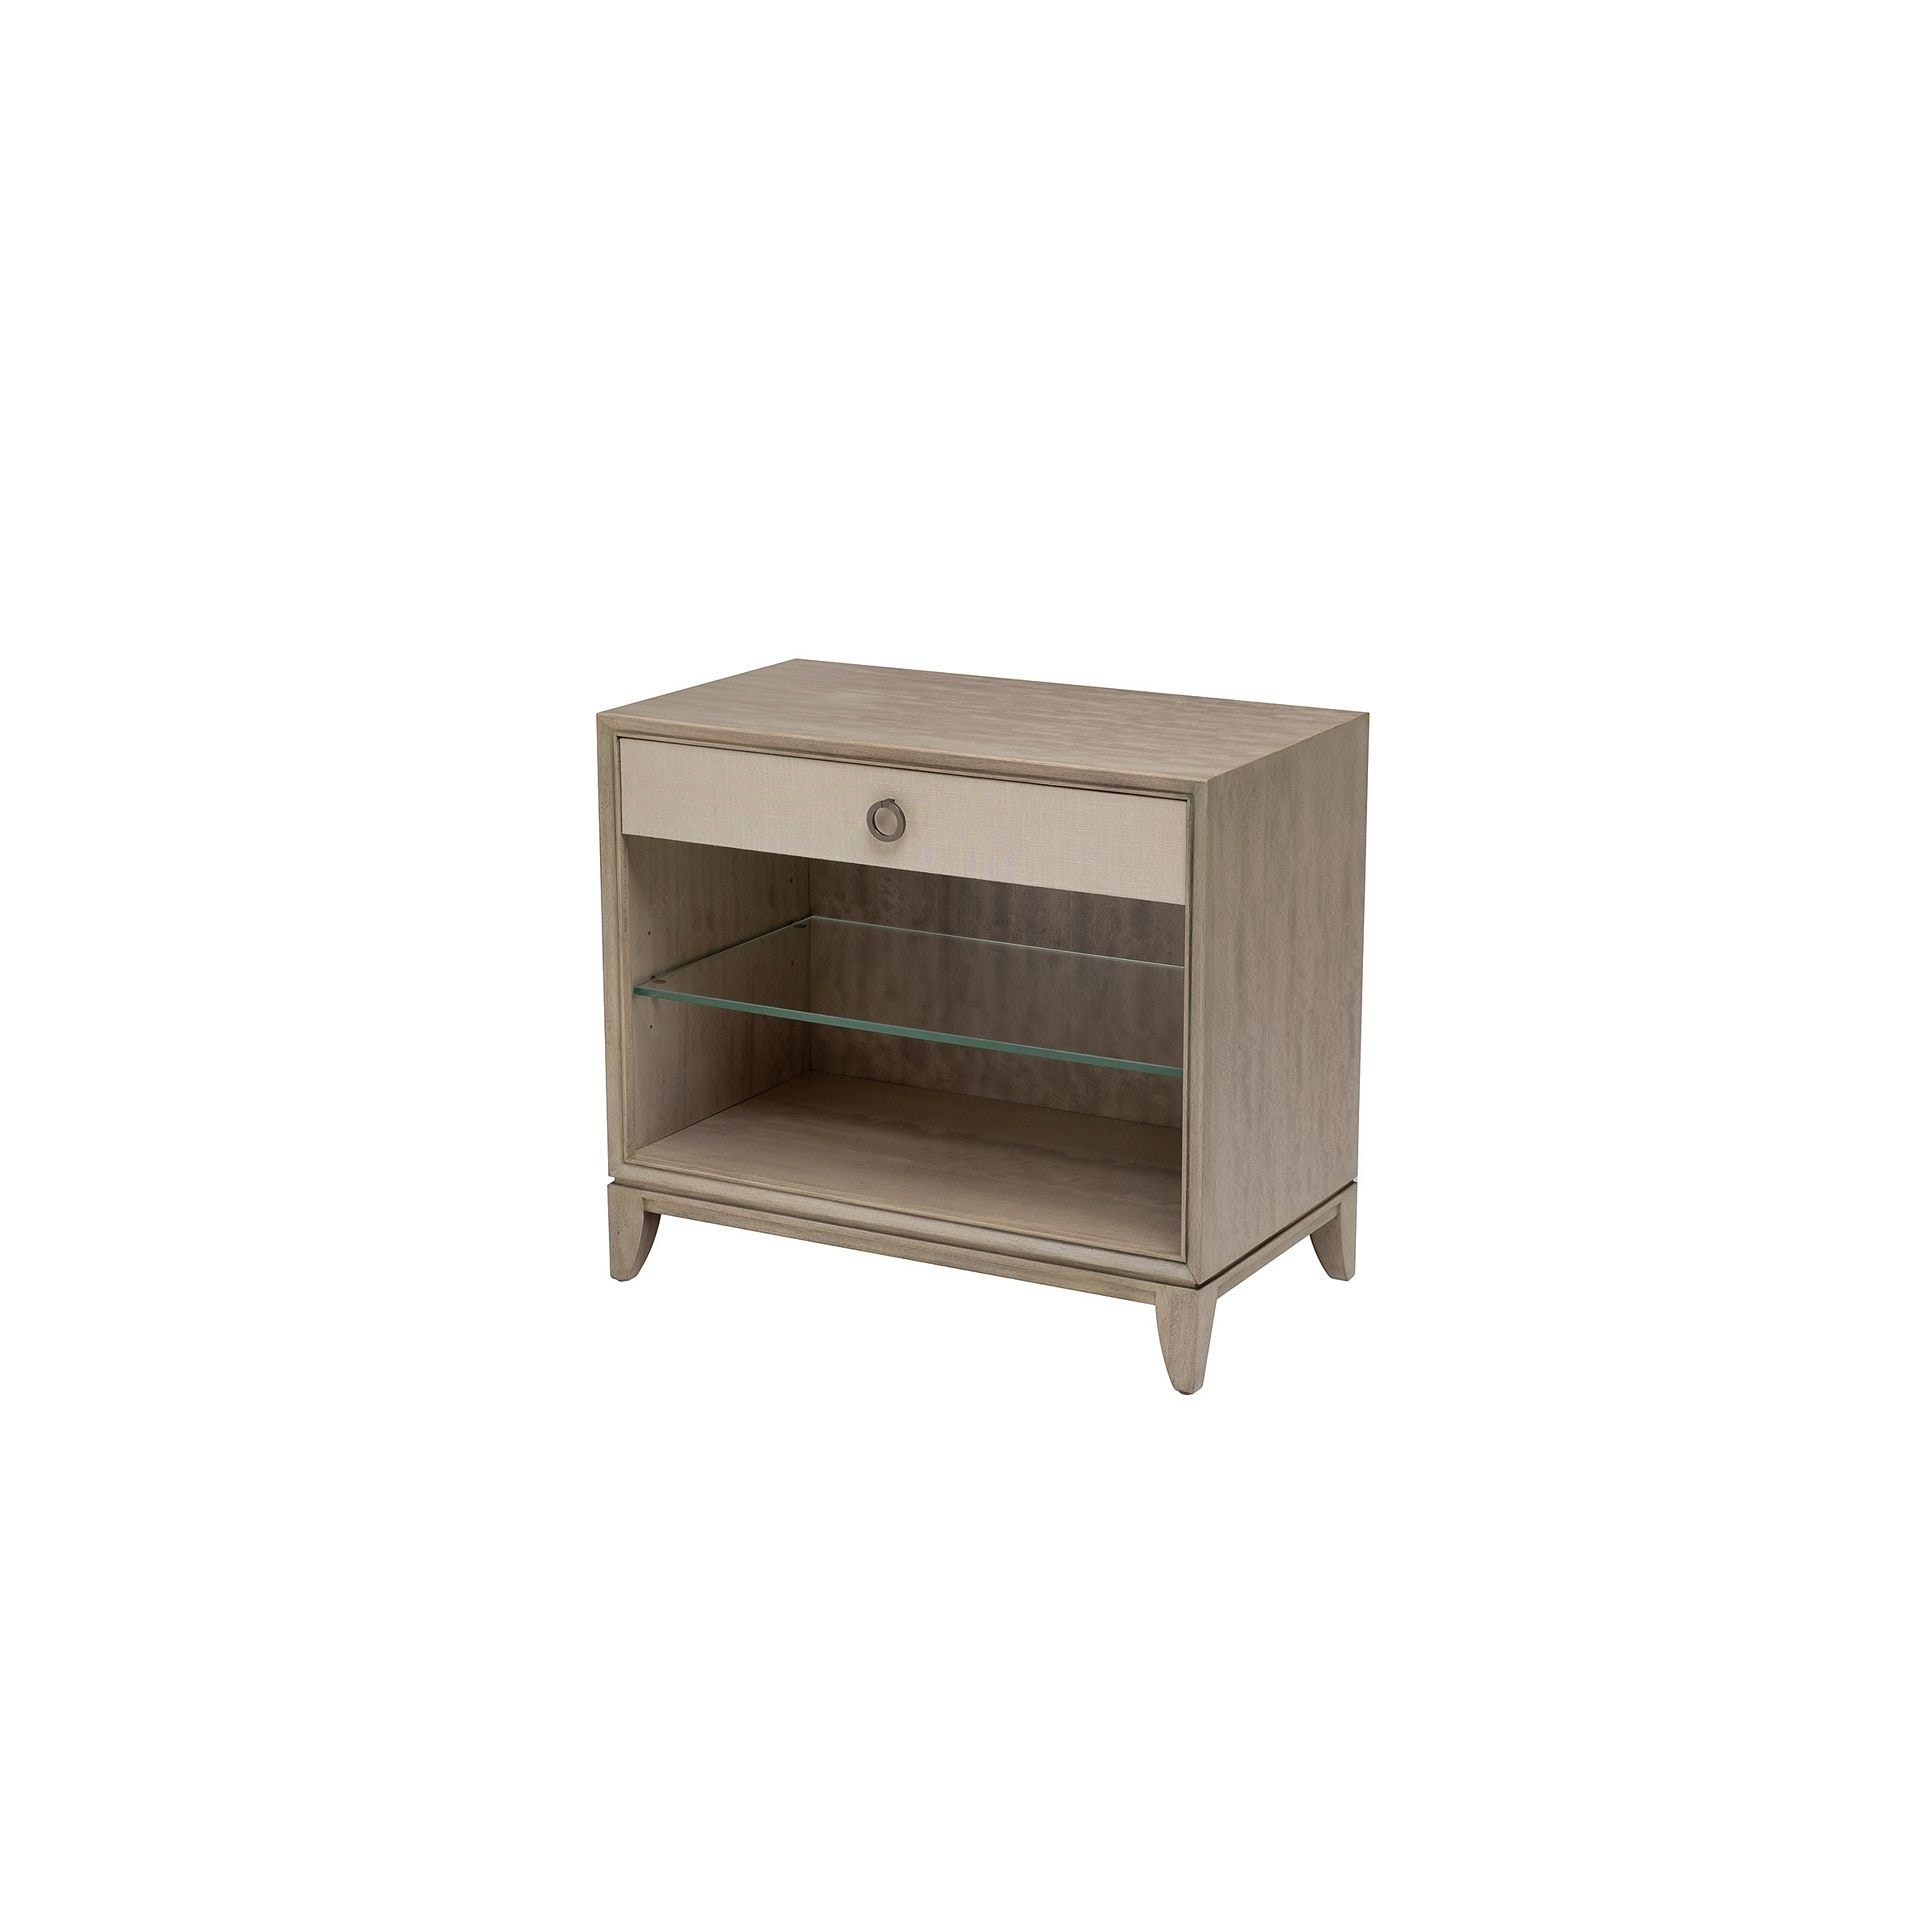 Henredon Furniture 1945 Collection Lenox Open Night Stand 2201 06 801